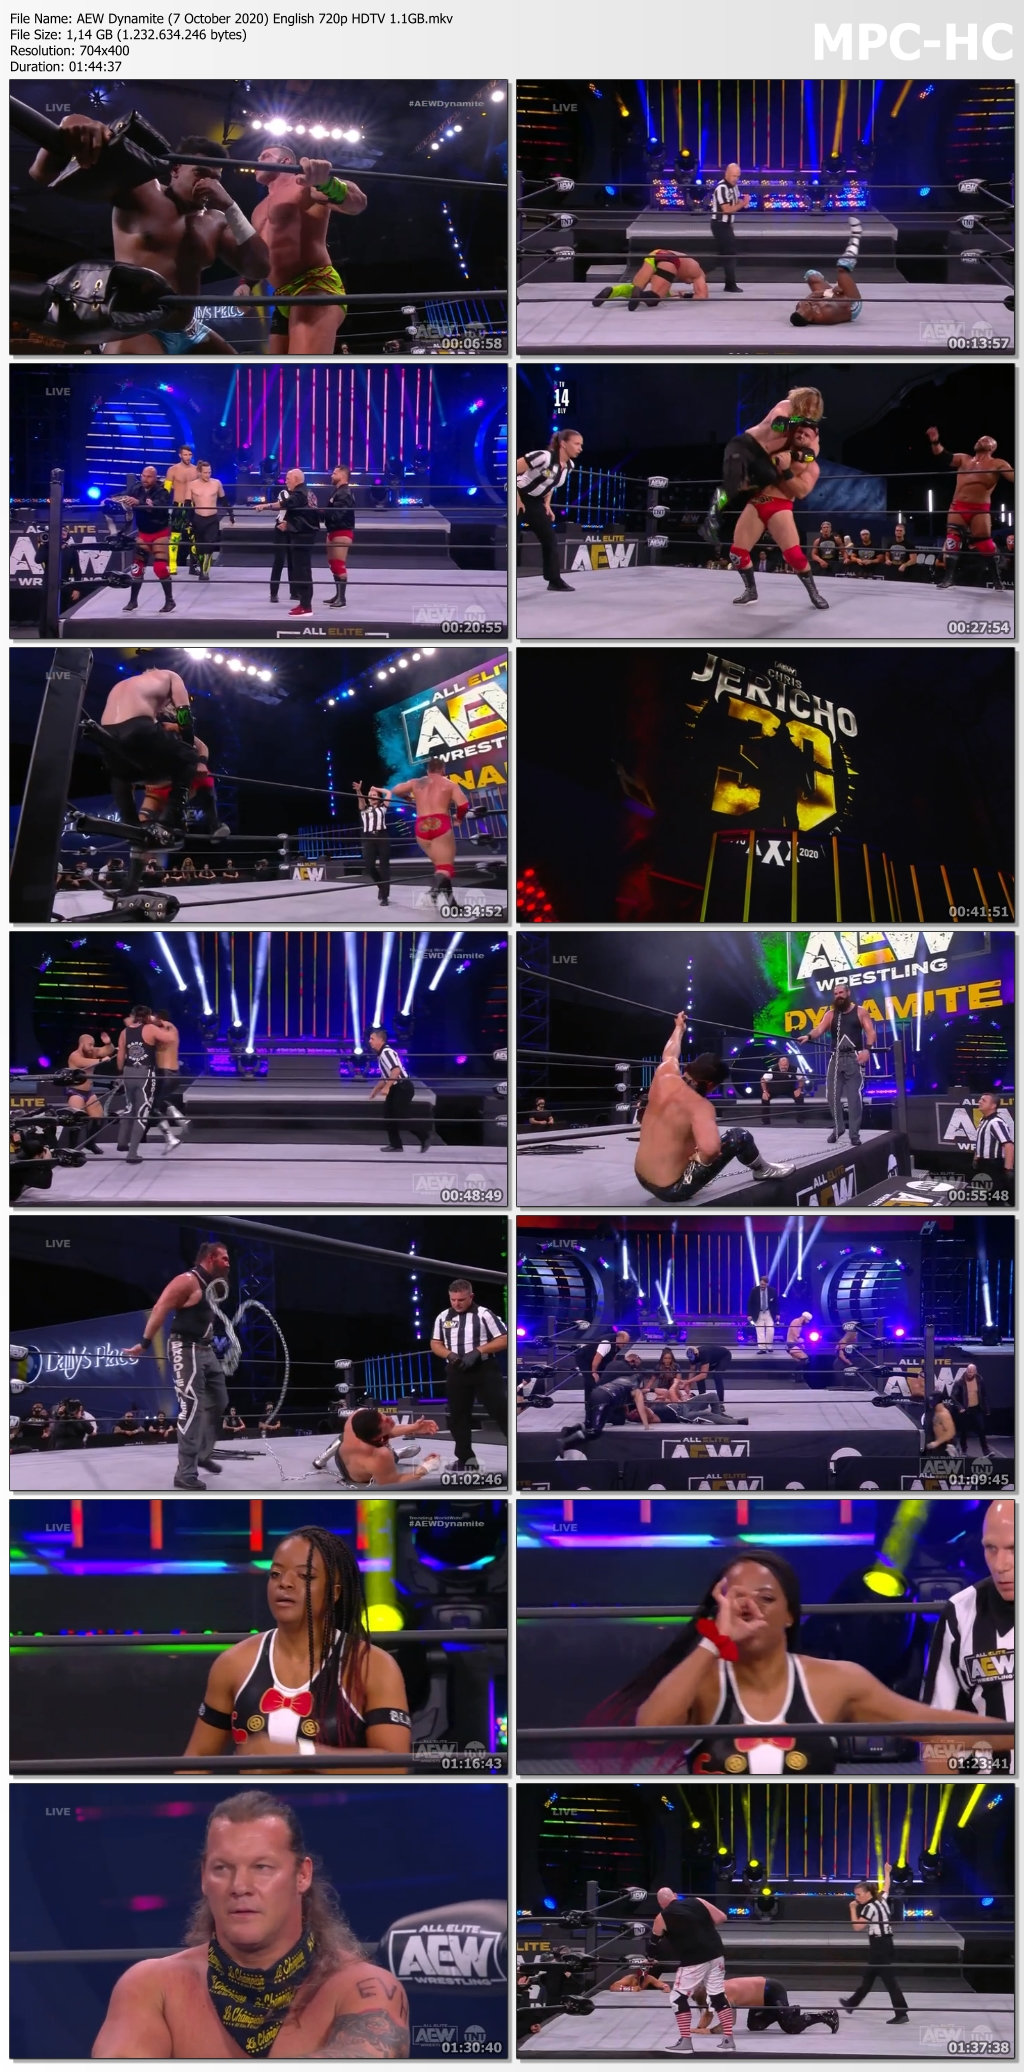 AEW-Dynamite-7-October-2020-English-720p-HDTV-1-1-GB-mkv-thumbs